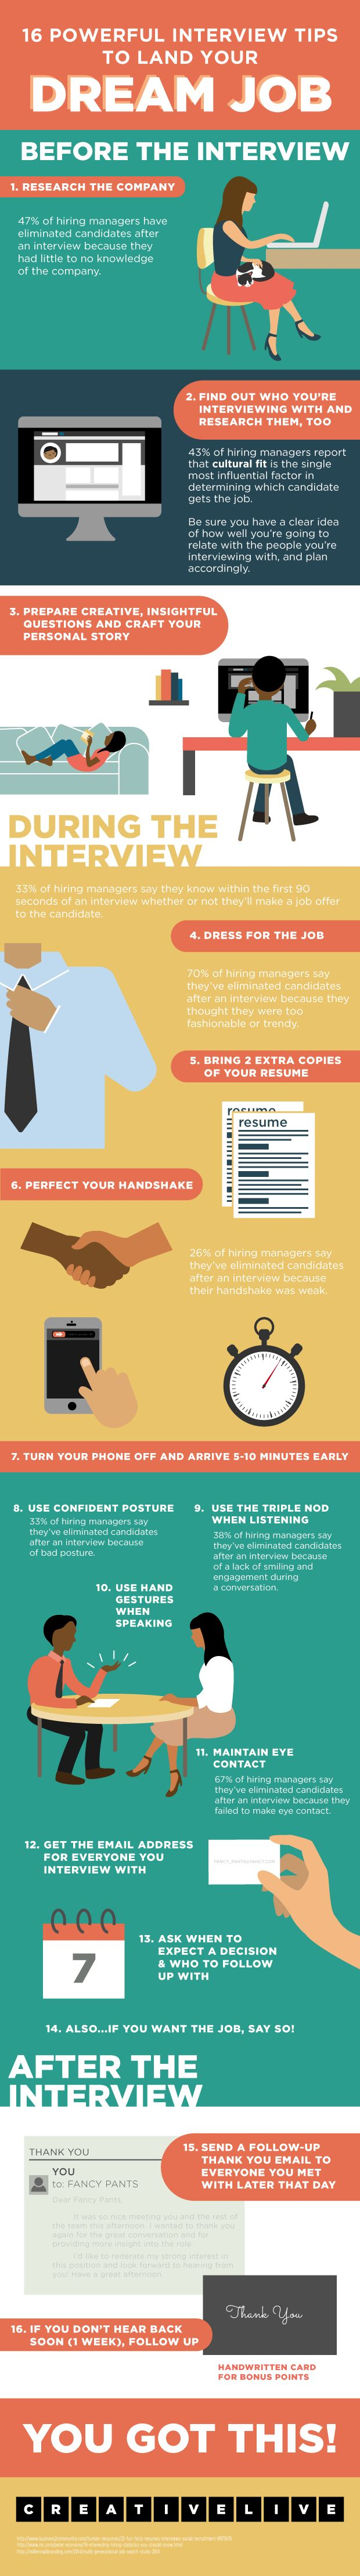 16 Powerful Interview Tips to Land Your Dream Job